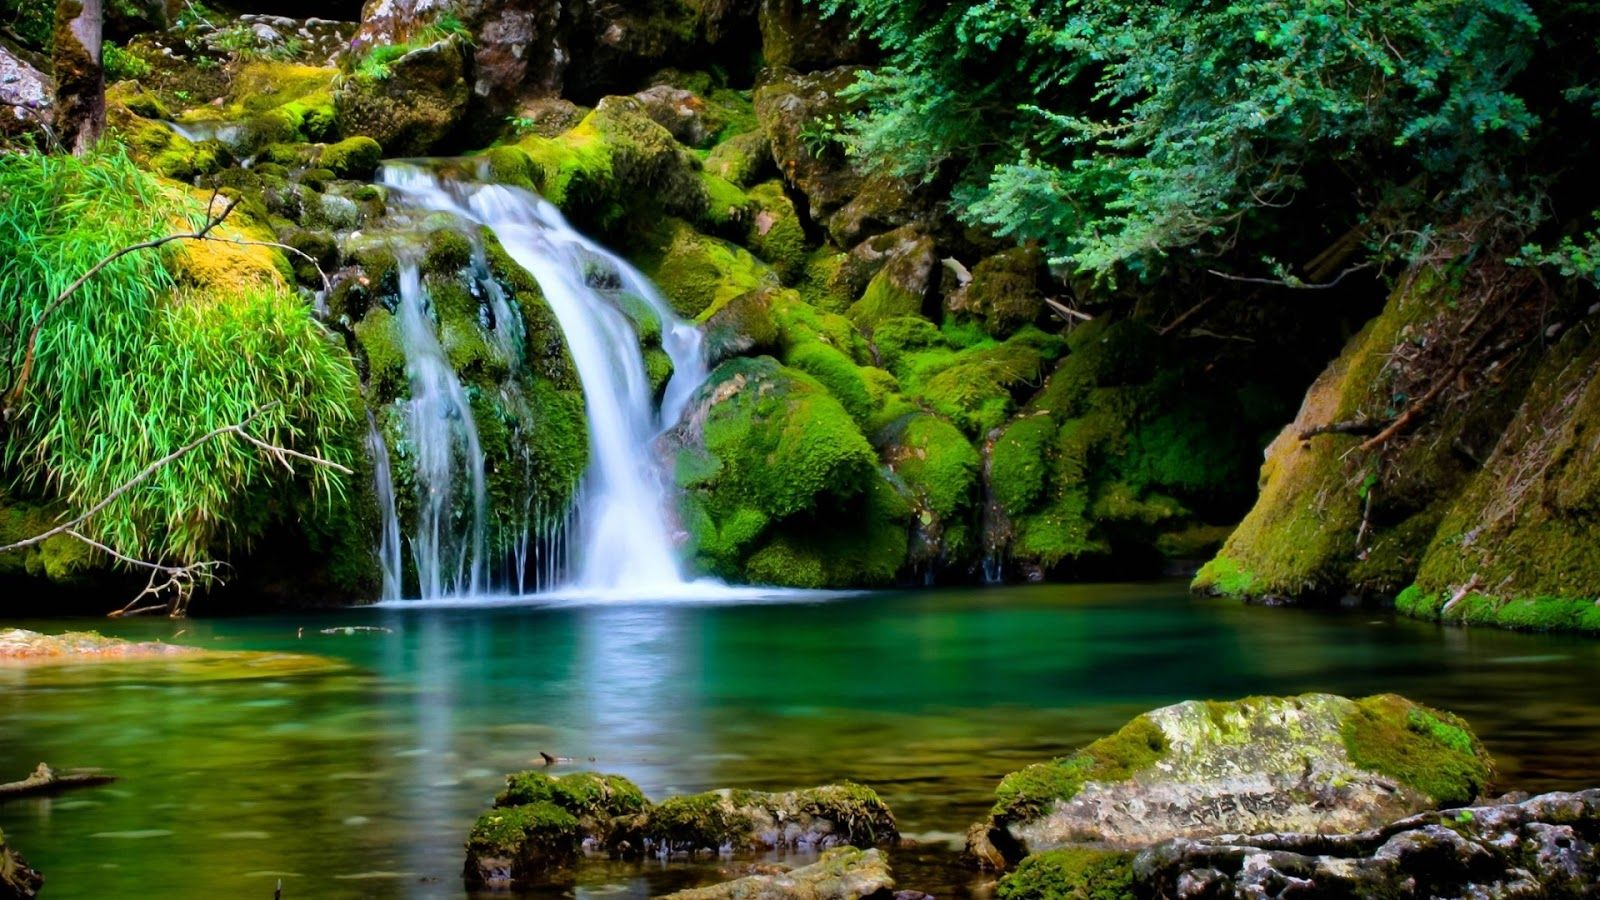 Free Download Wallpapers Of Nature Hd Nature Wallpapers Nature Wallpaper Landscape Wallpaper